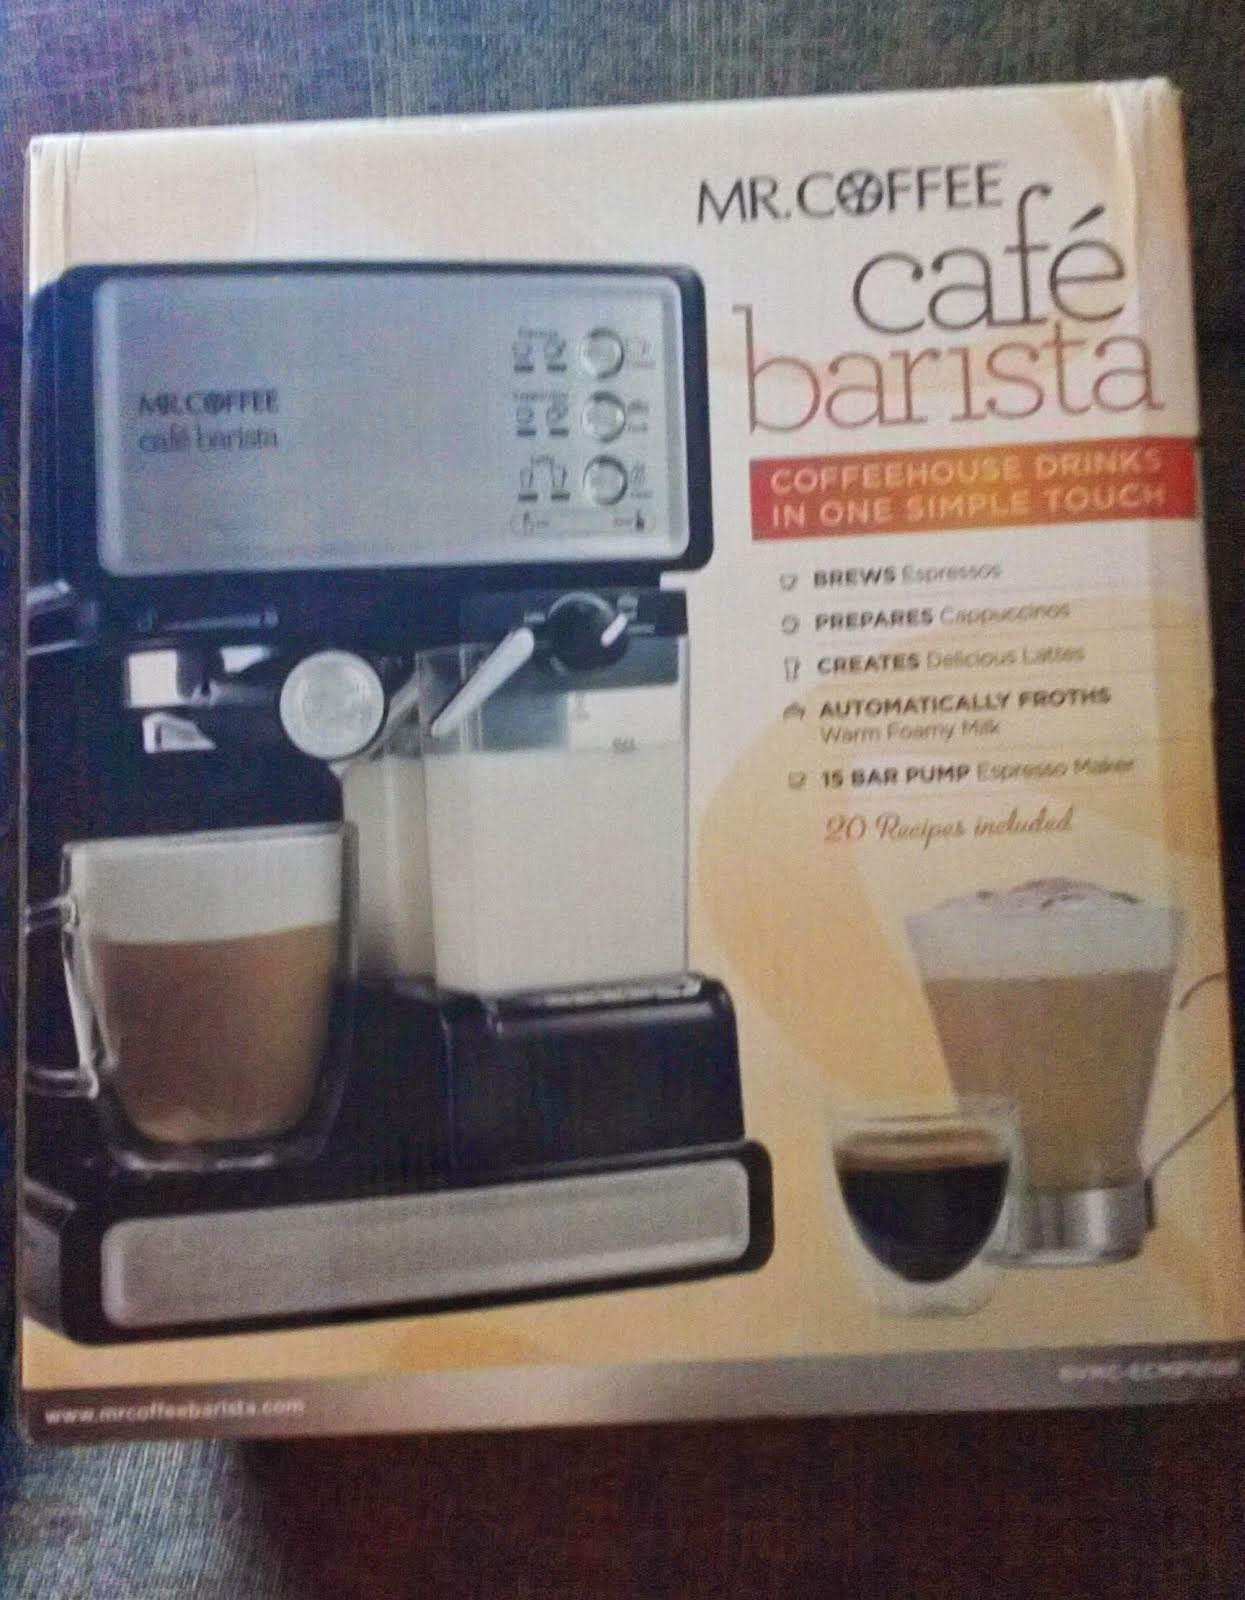 Mr. Coffee Cafe Barista